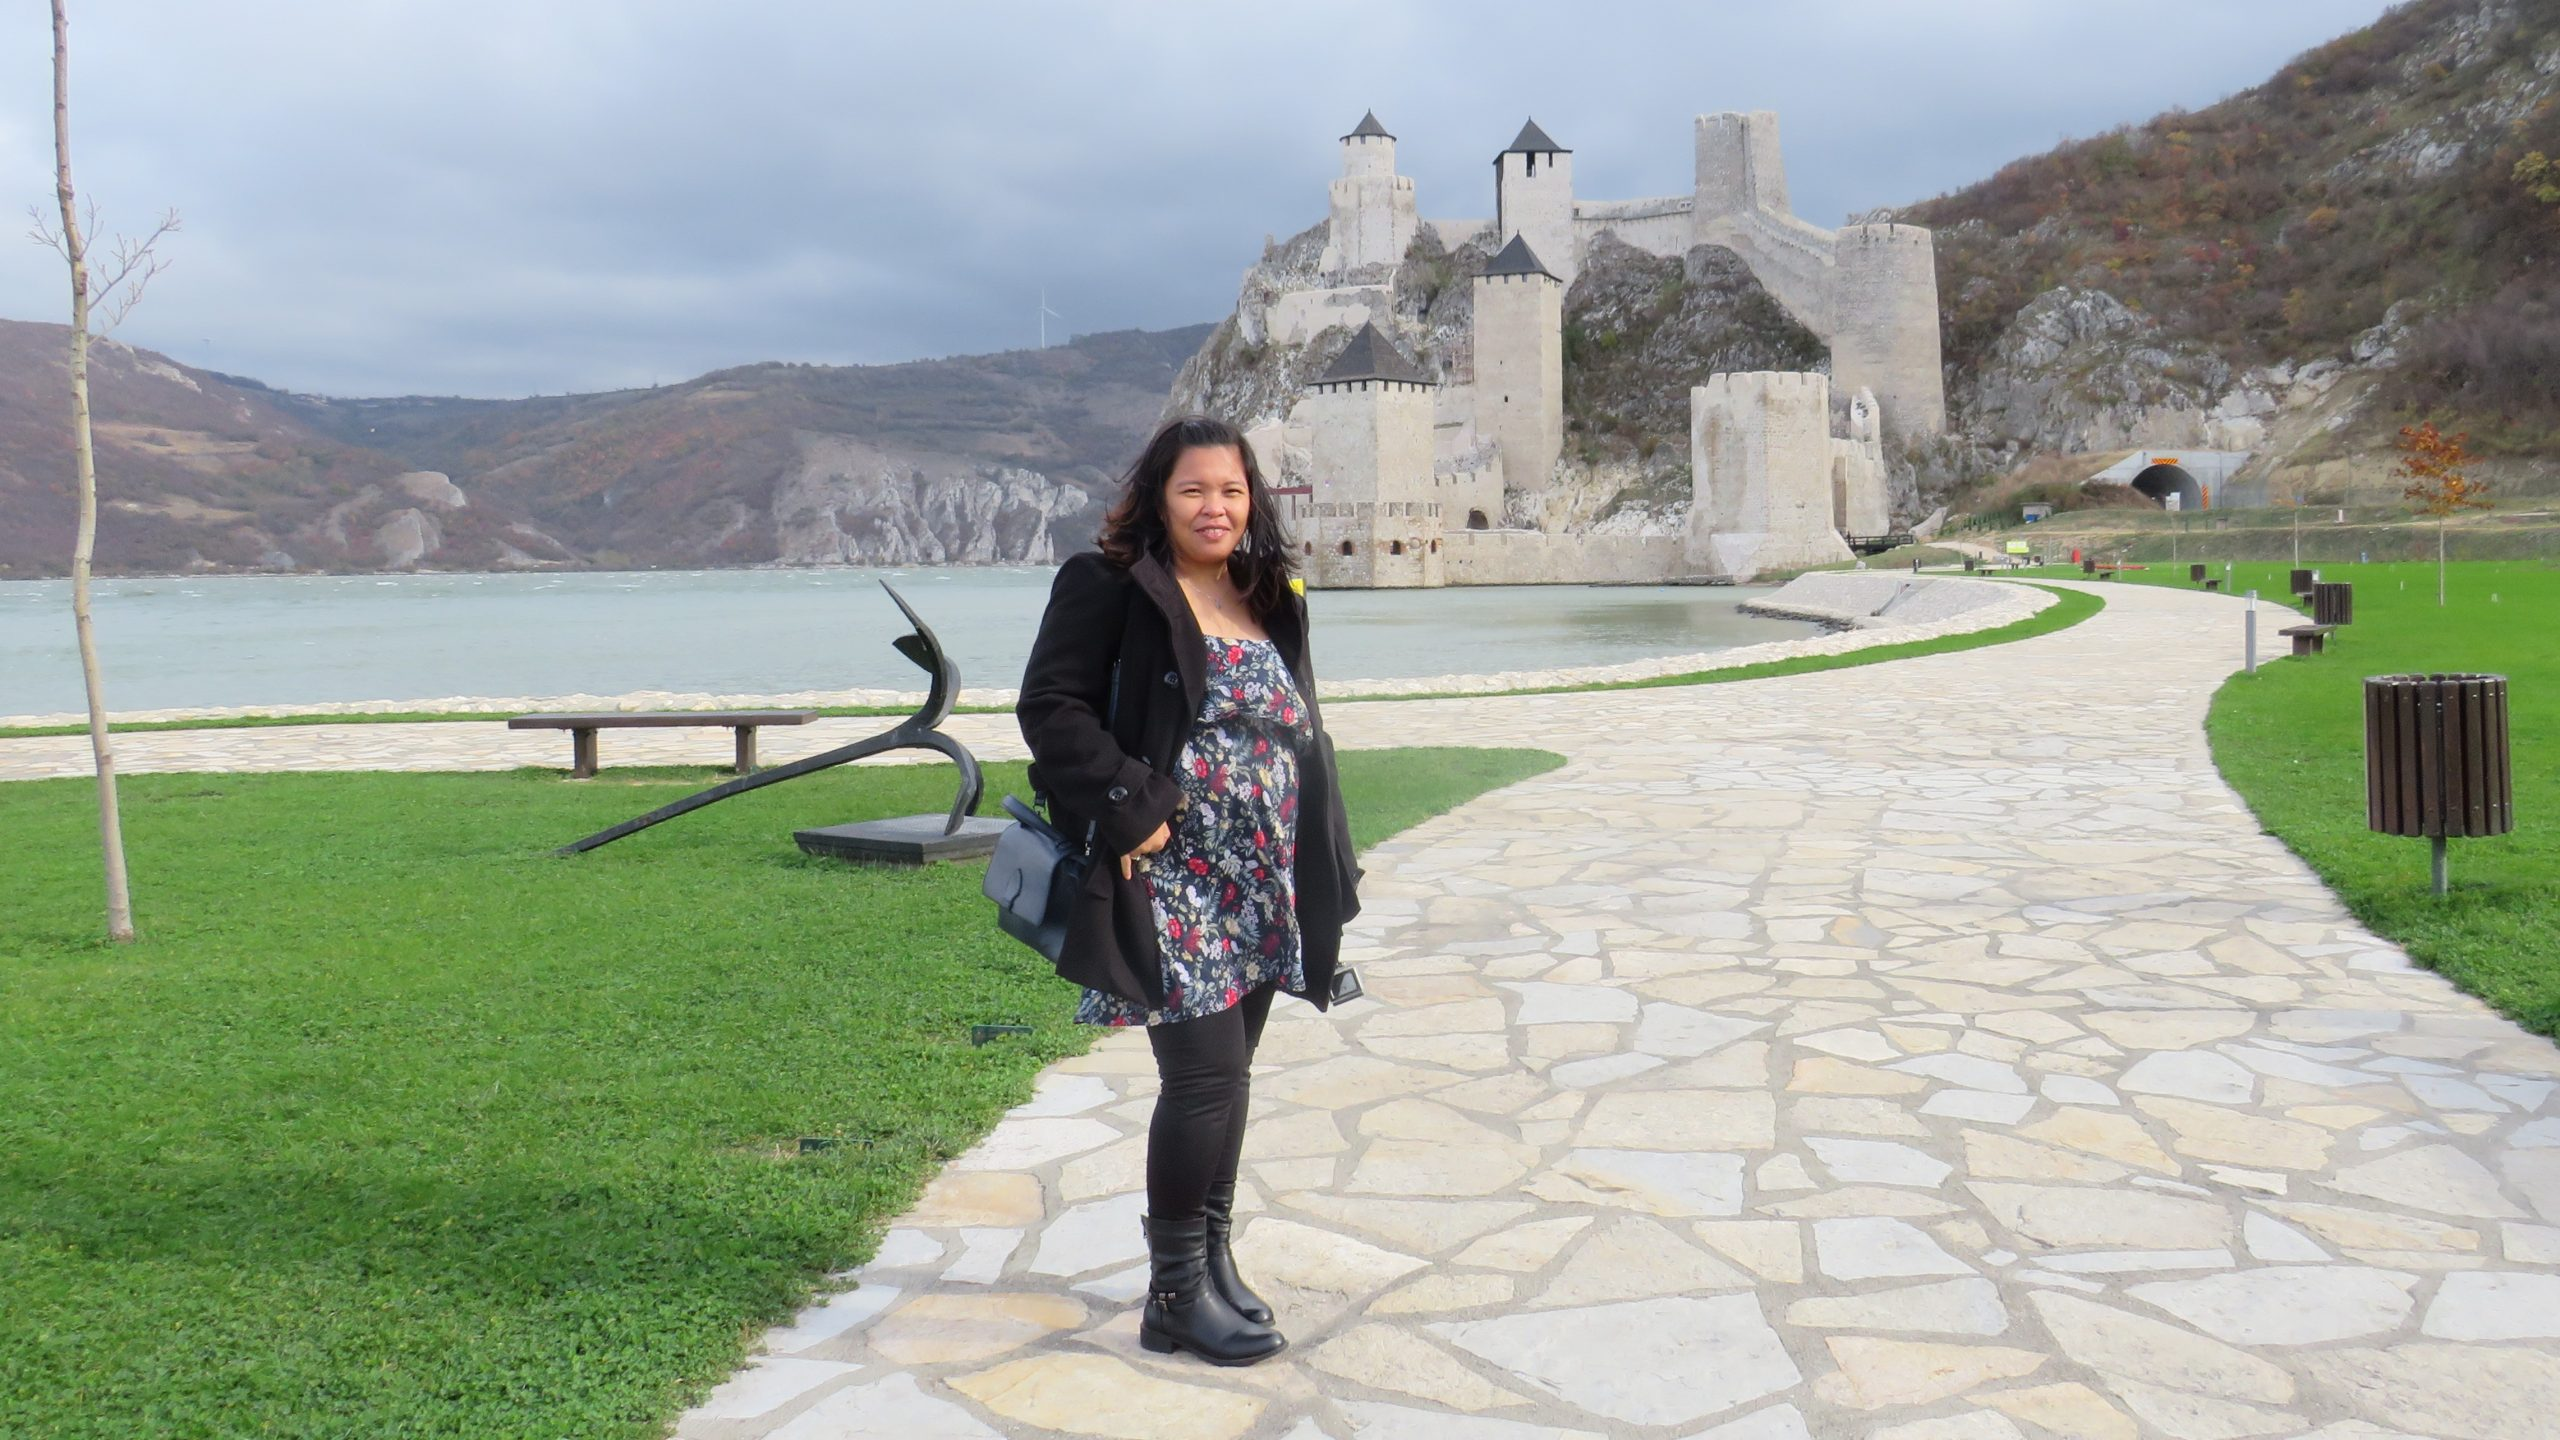 Bianca Rei at 6 months pregnant. Golubac Fortress